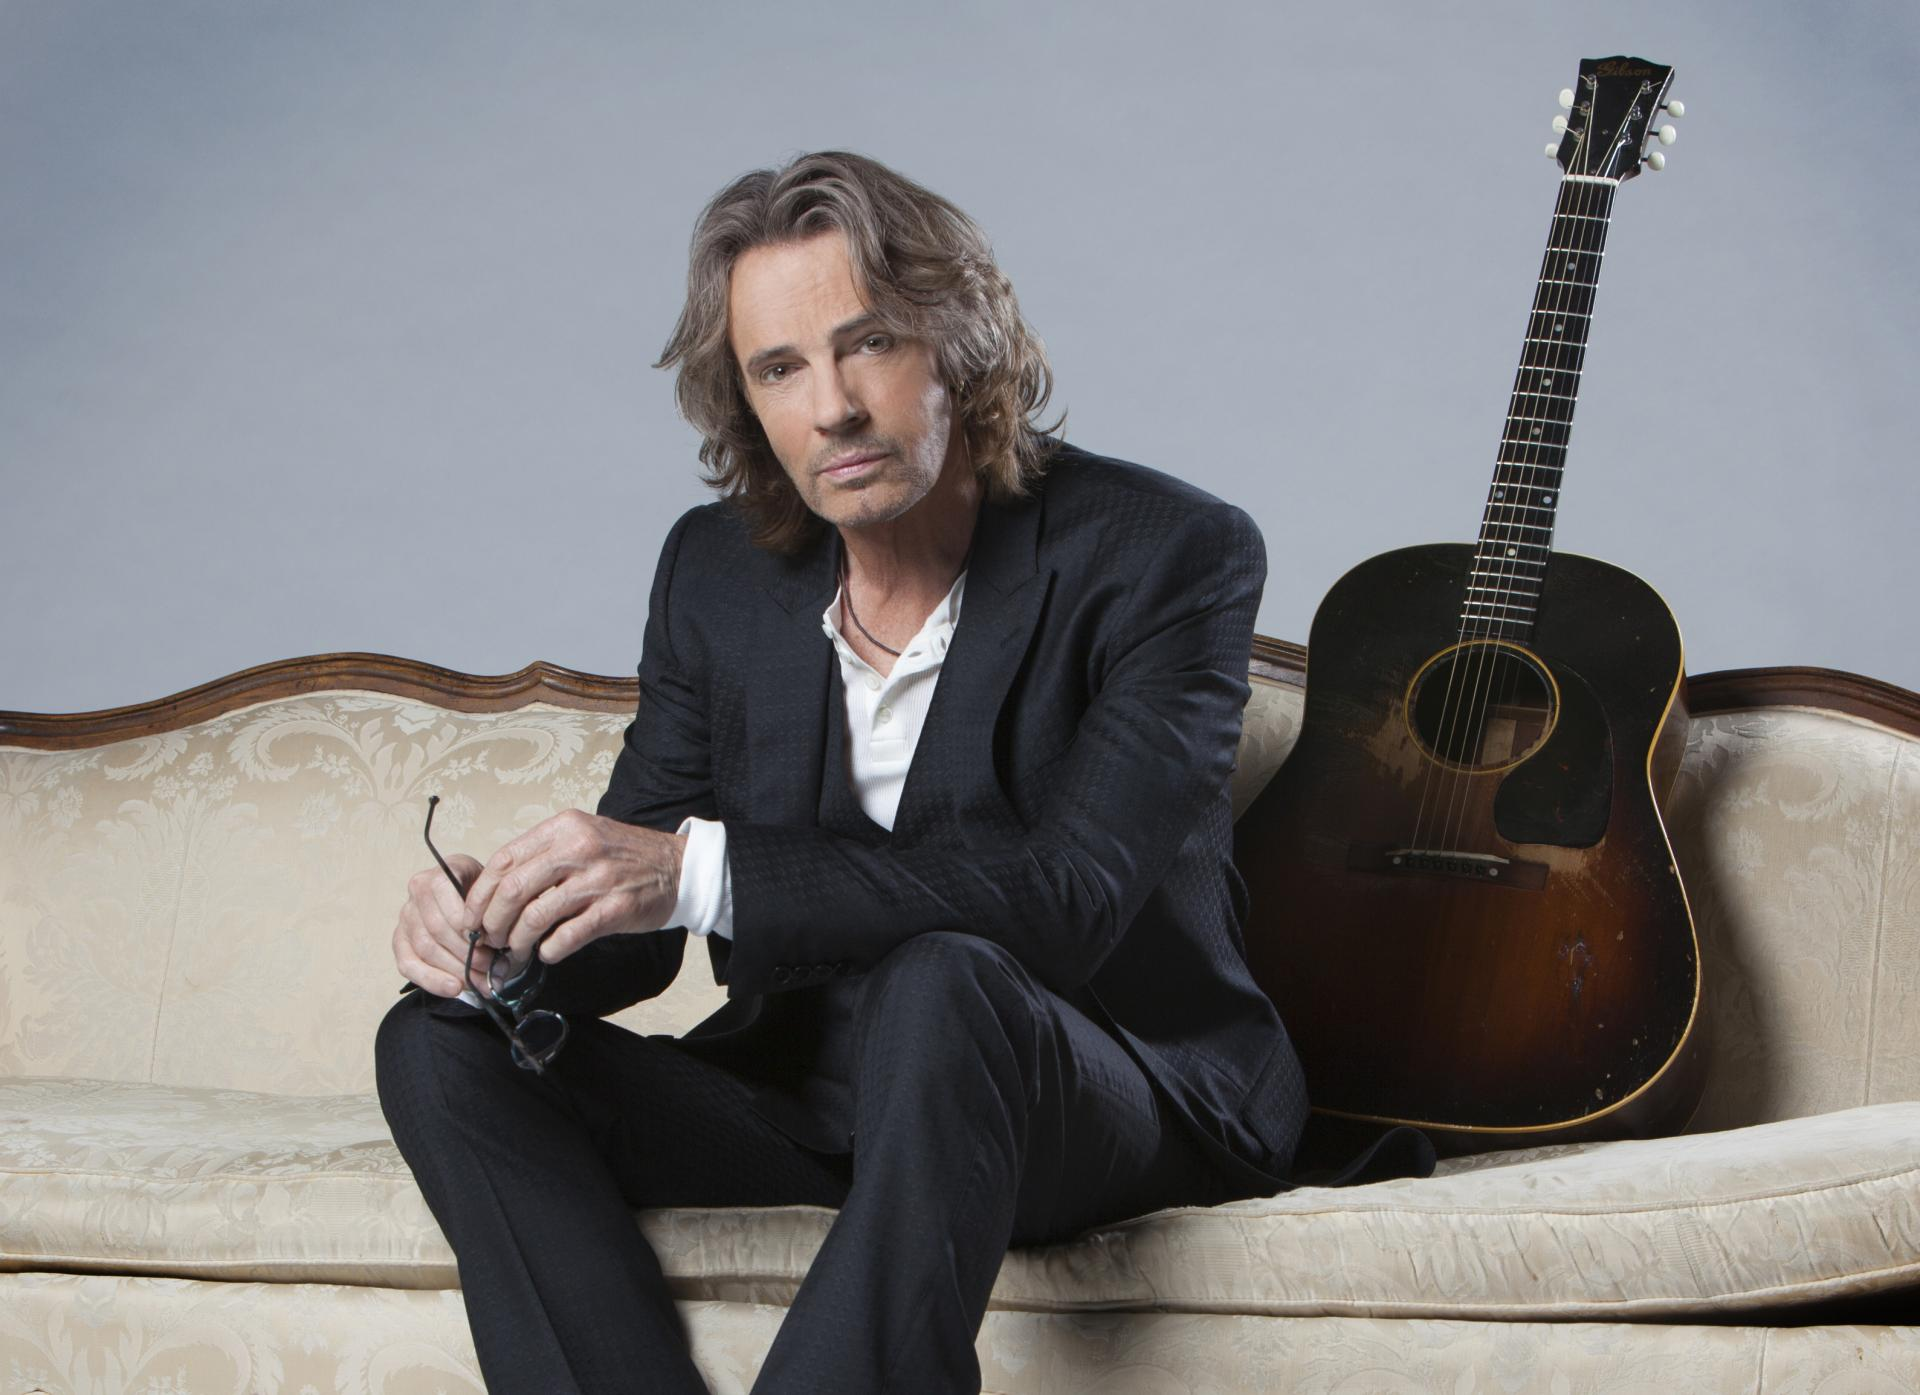 Rick Springfield will take to the stage at North Central College